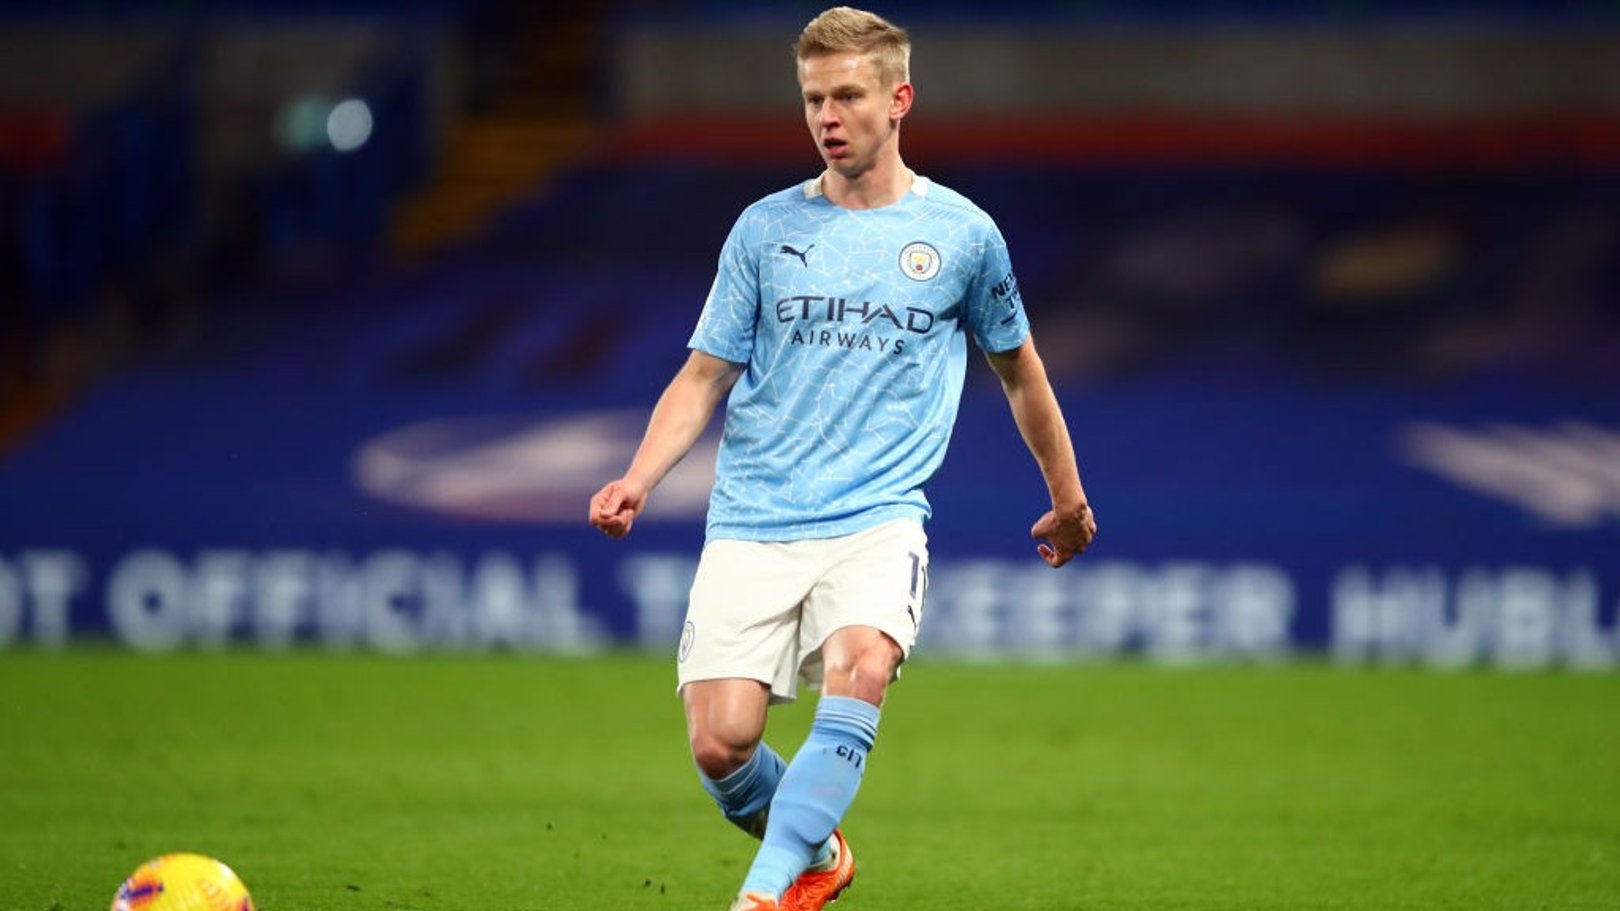 Oleksandr Zinchenko: Top spot would be a confidence boost